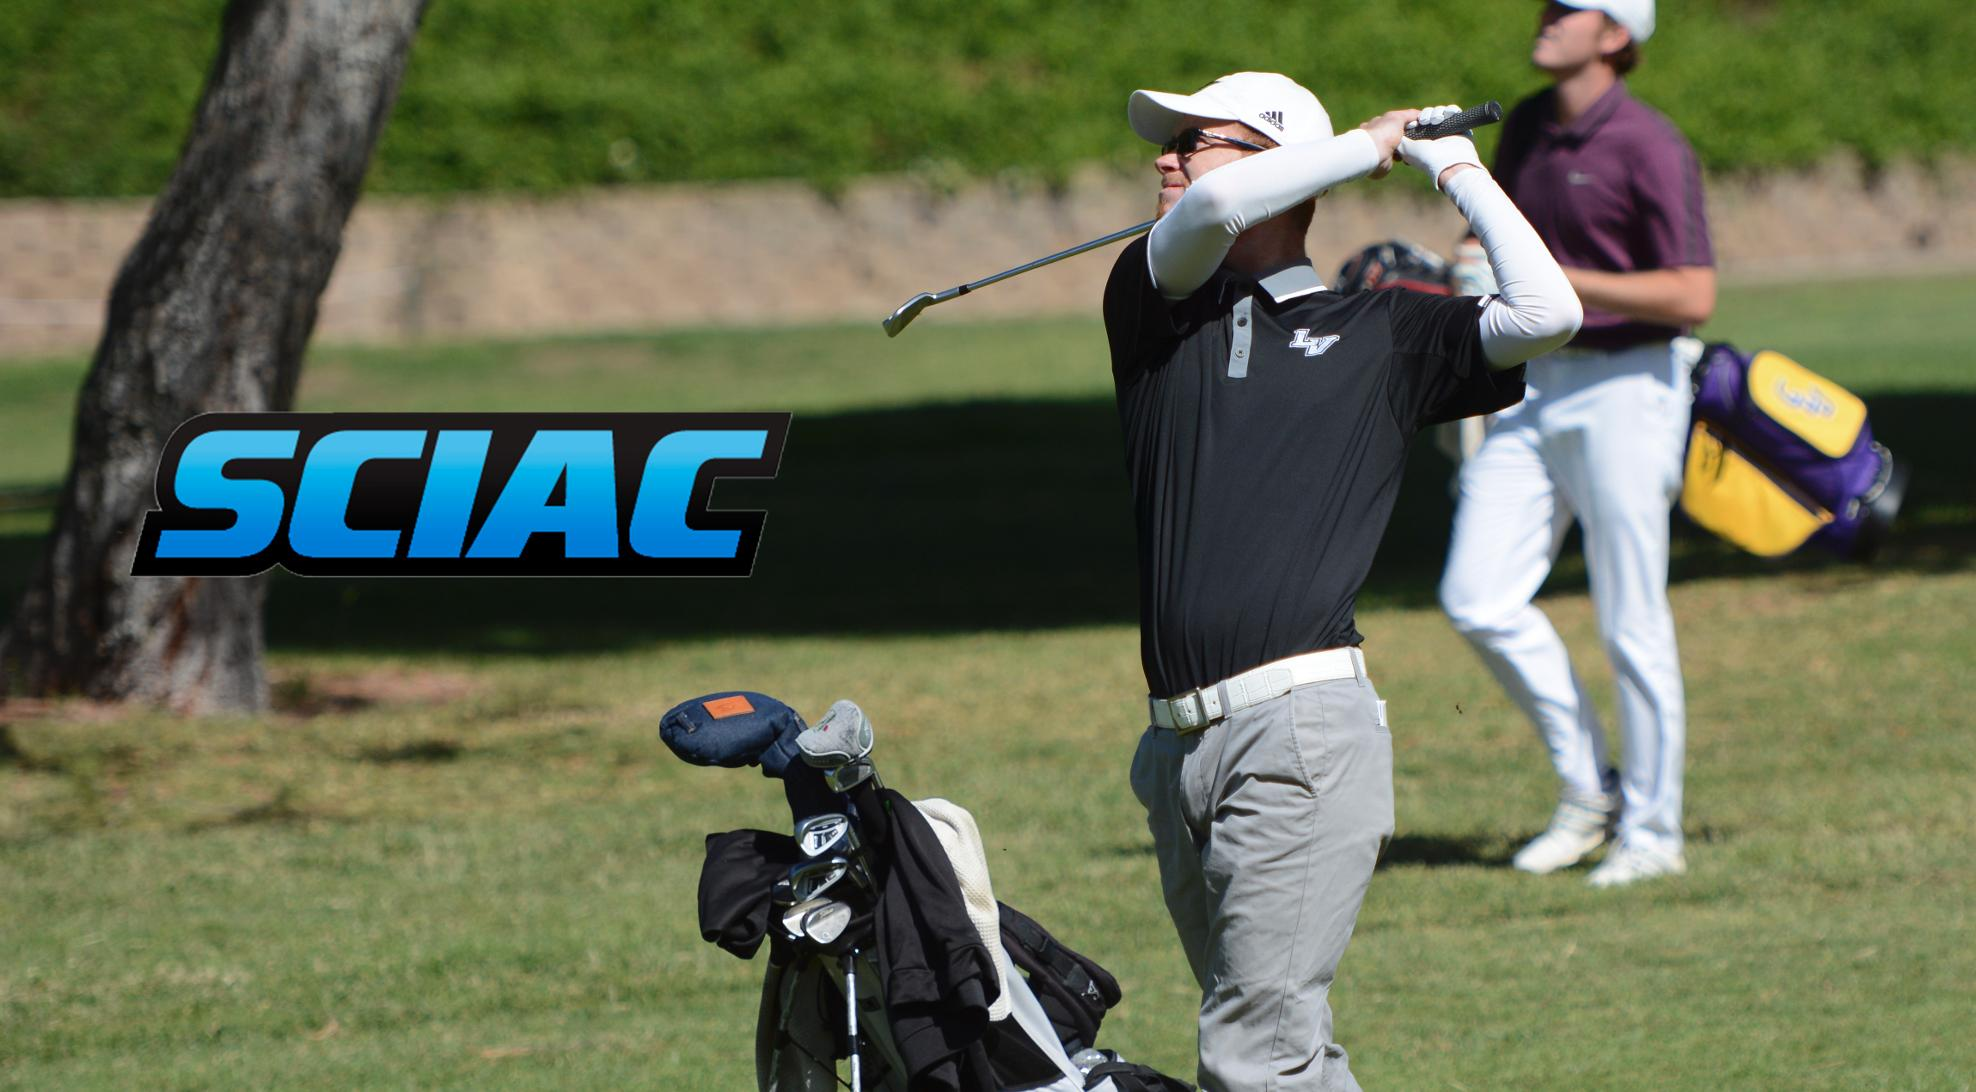 Spencer named All-SCIAC